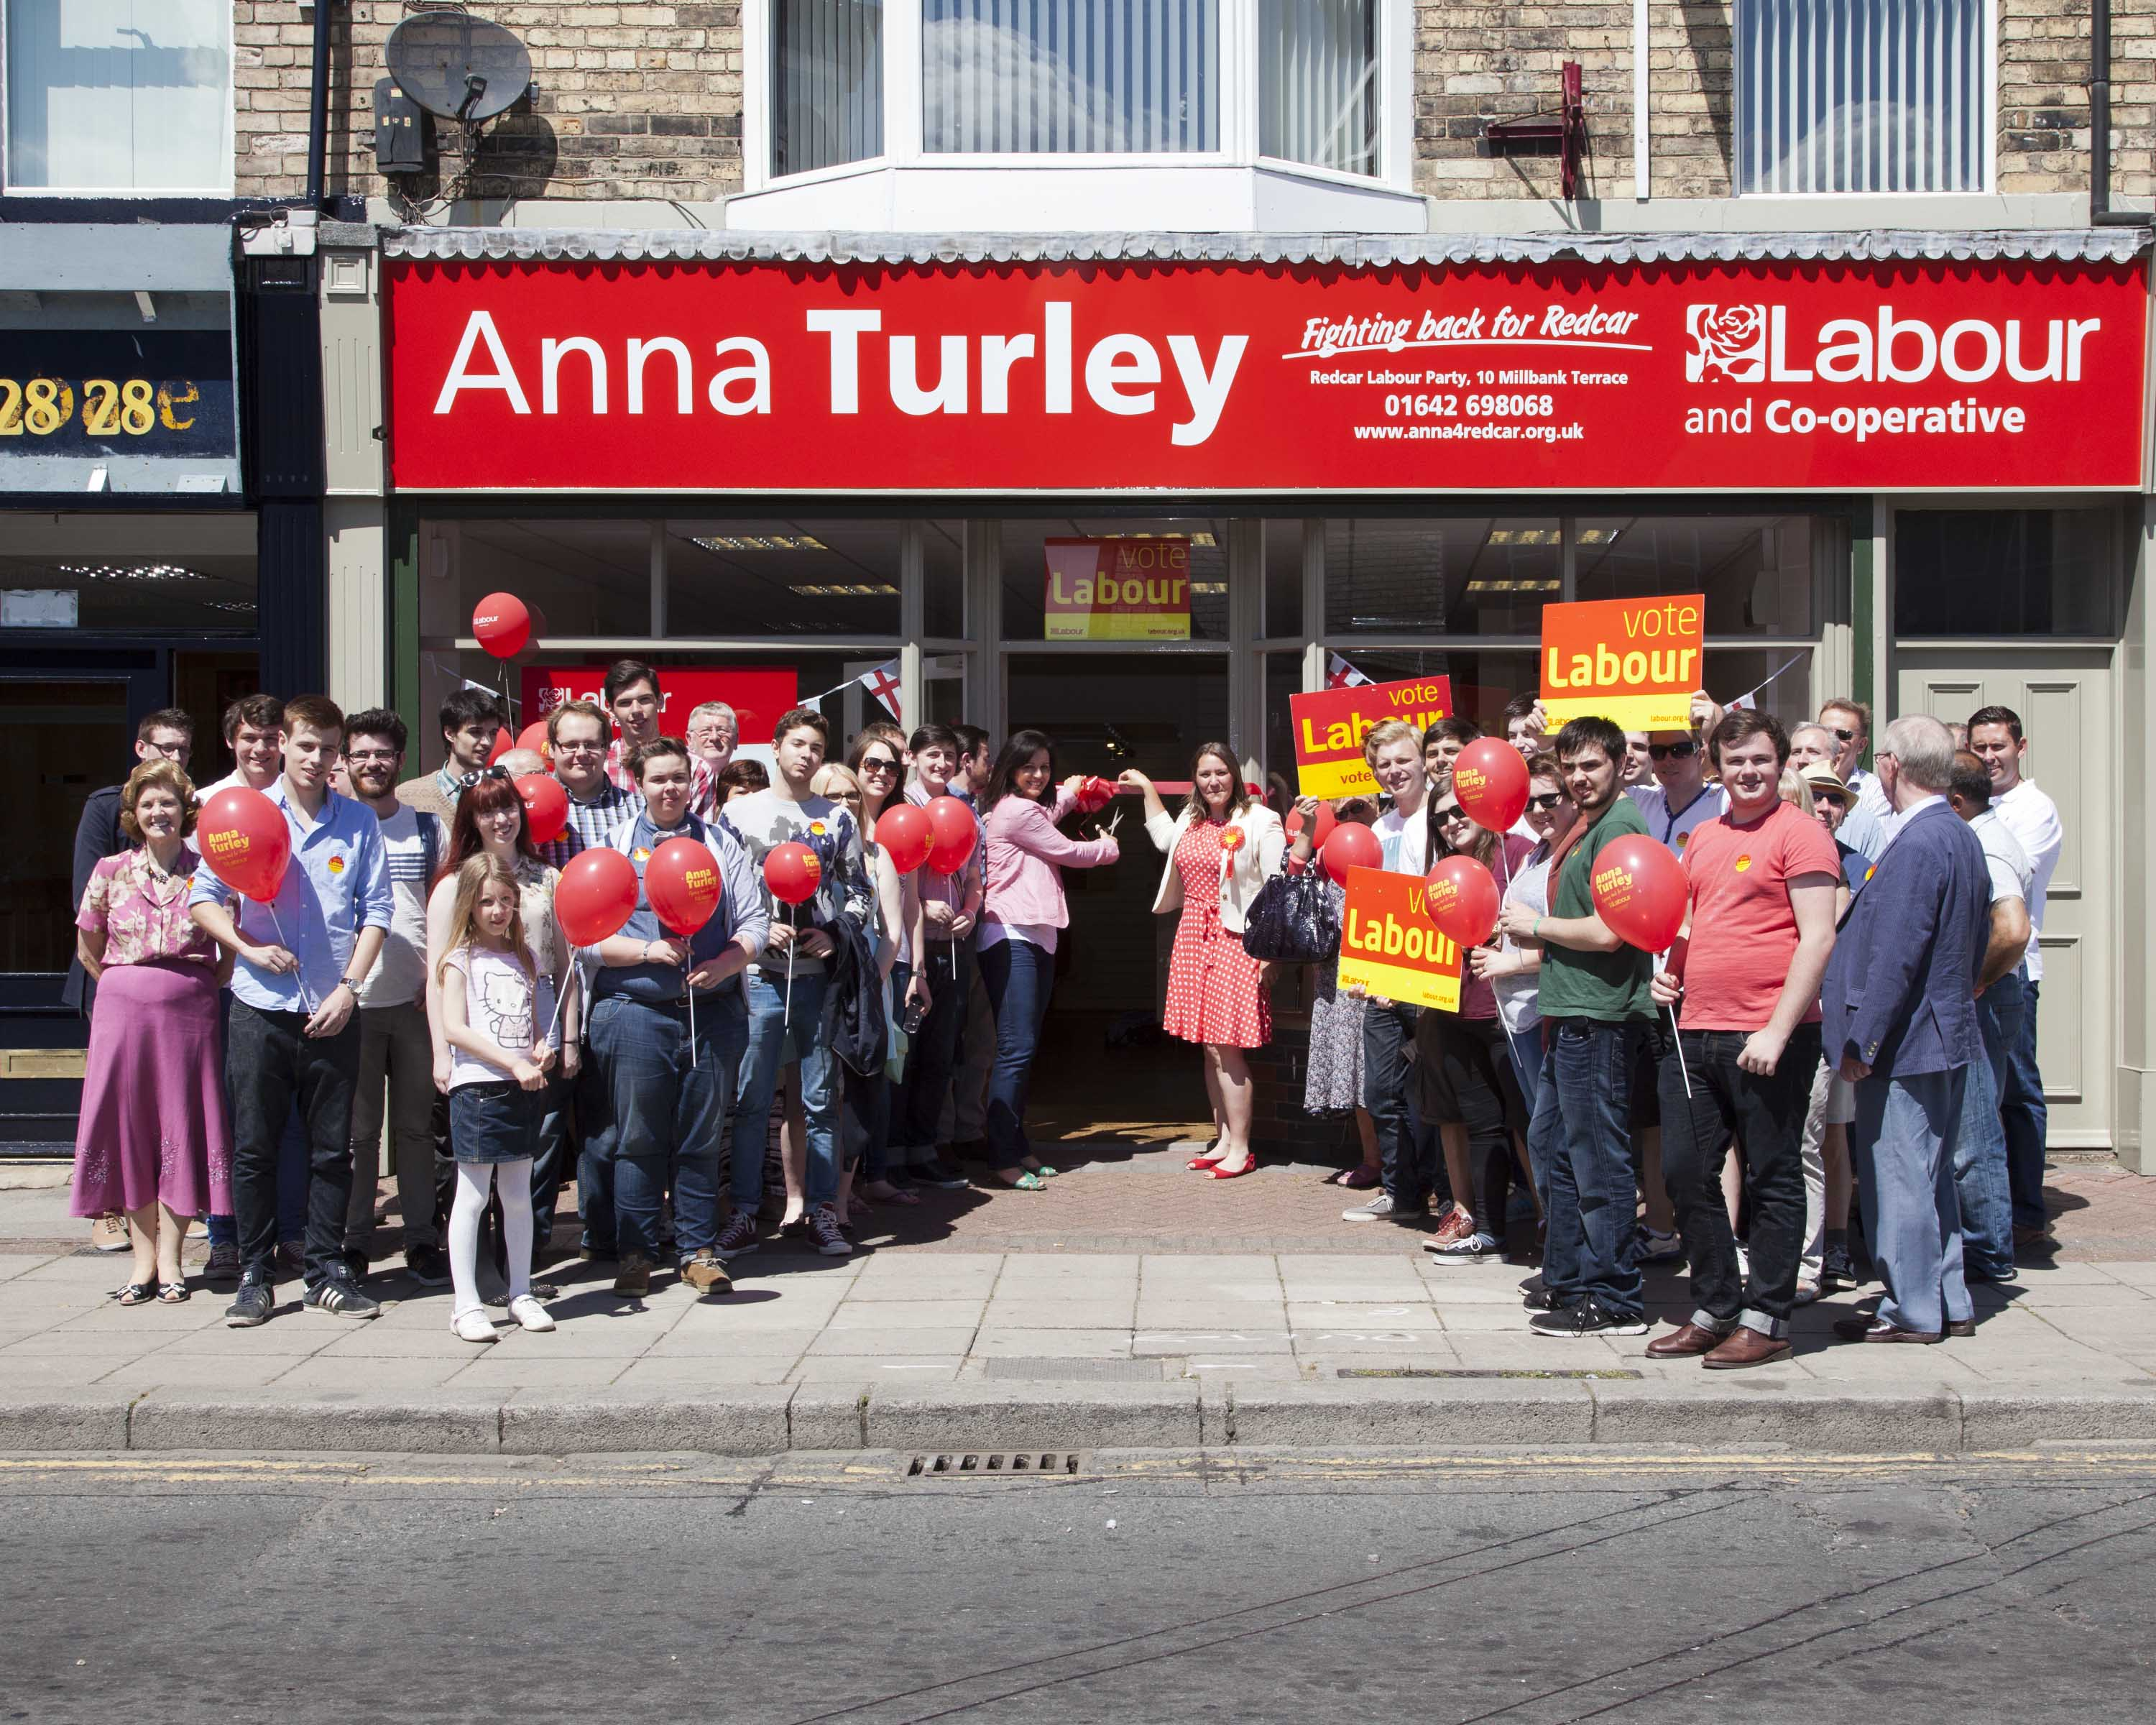 Opening of Anna Turley's campaign office